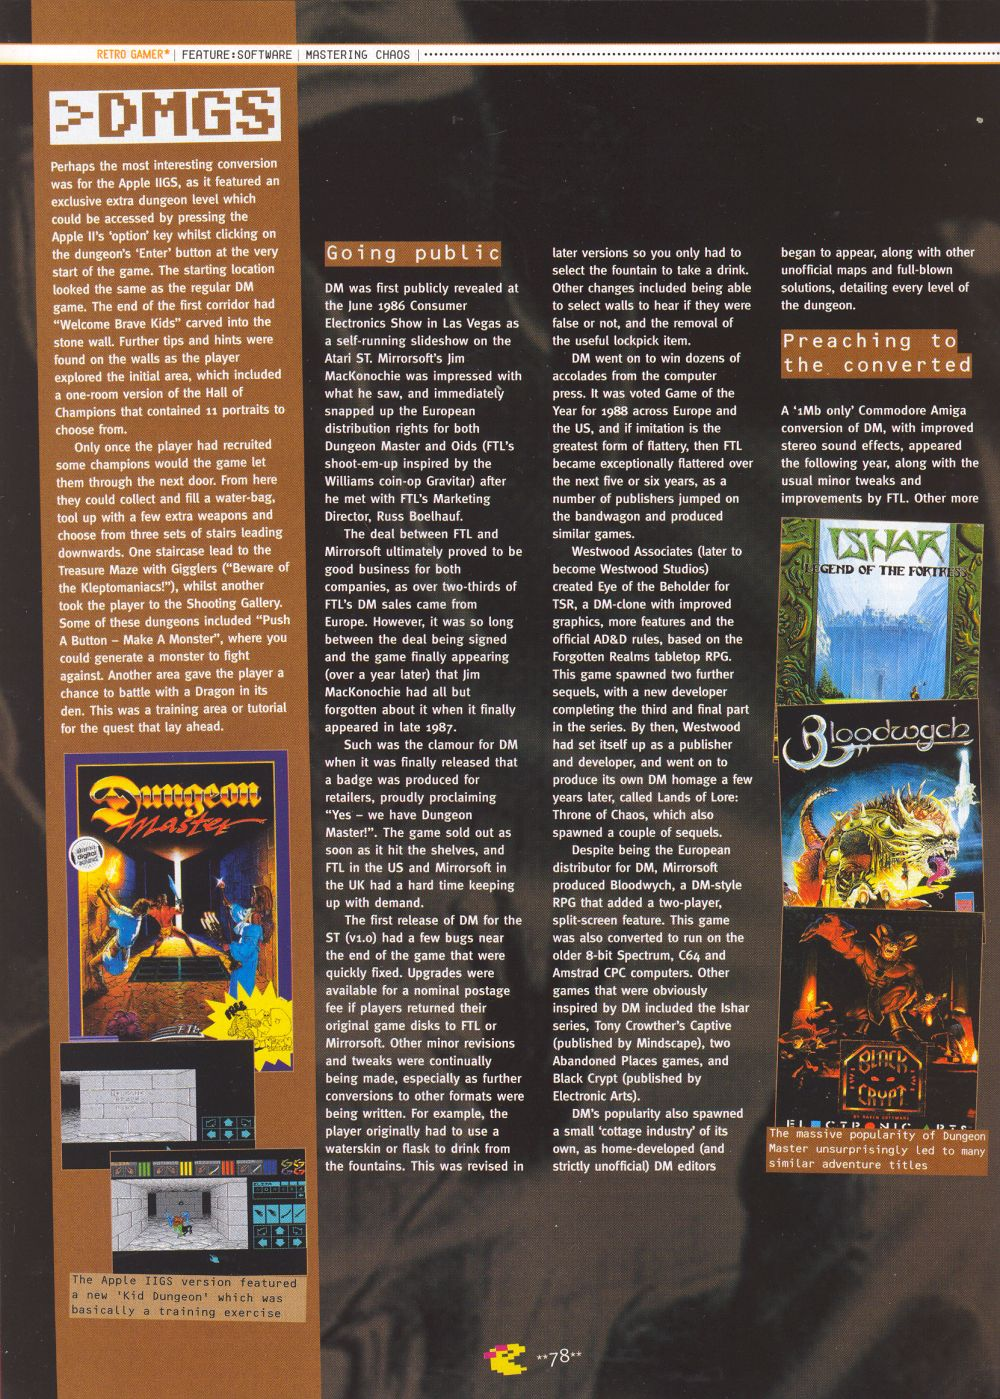 An article titled 'Mastering Chaos', printed in issue 10 of 'Retro Gamer' and written by Richard Hewison Page 07